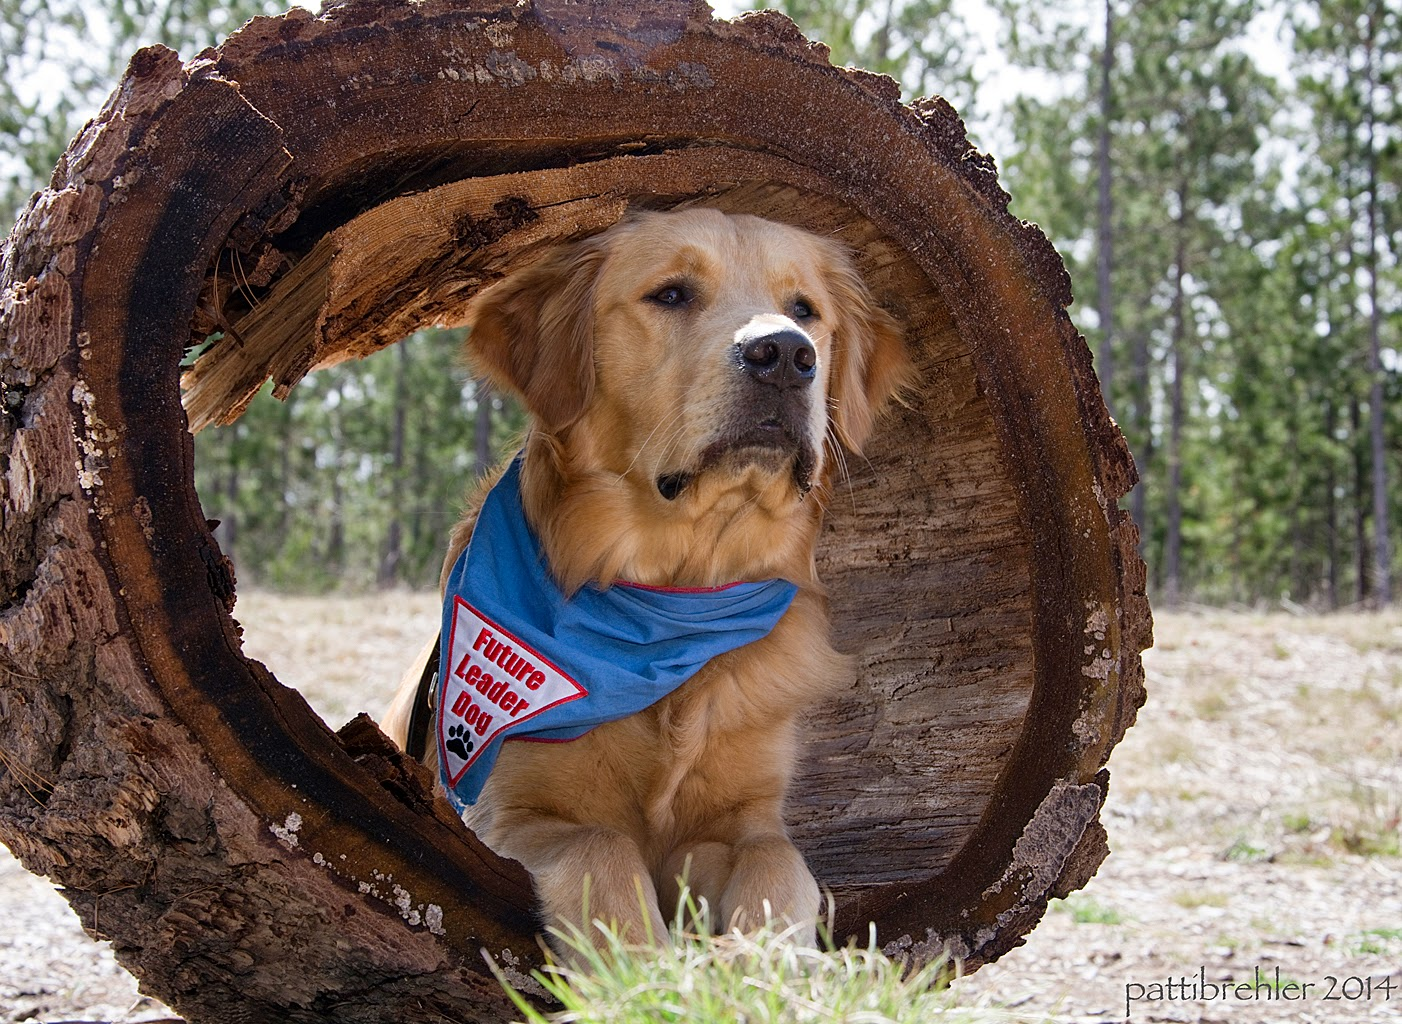 The golden retriever with the blue bandana is lying down inside a hollowed out section of a large tree trunk. He is looking out like he is ready to take on the world.